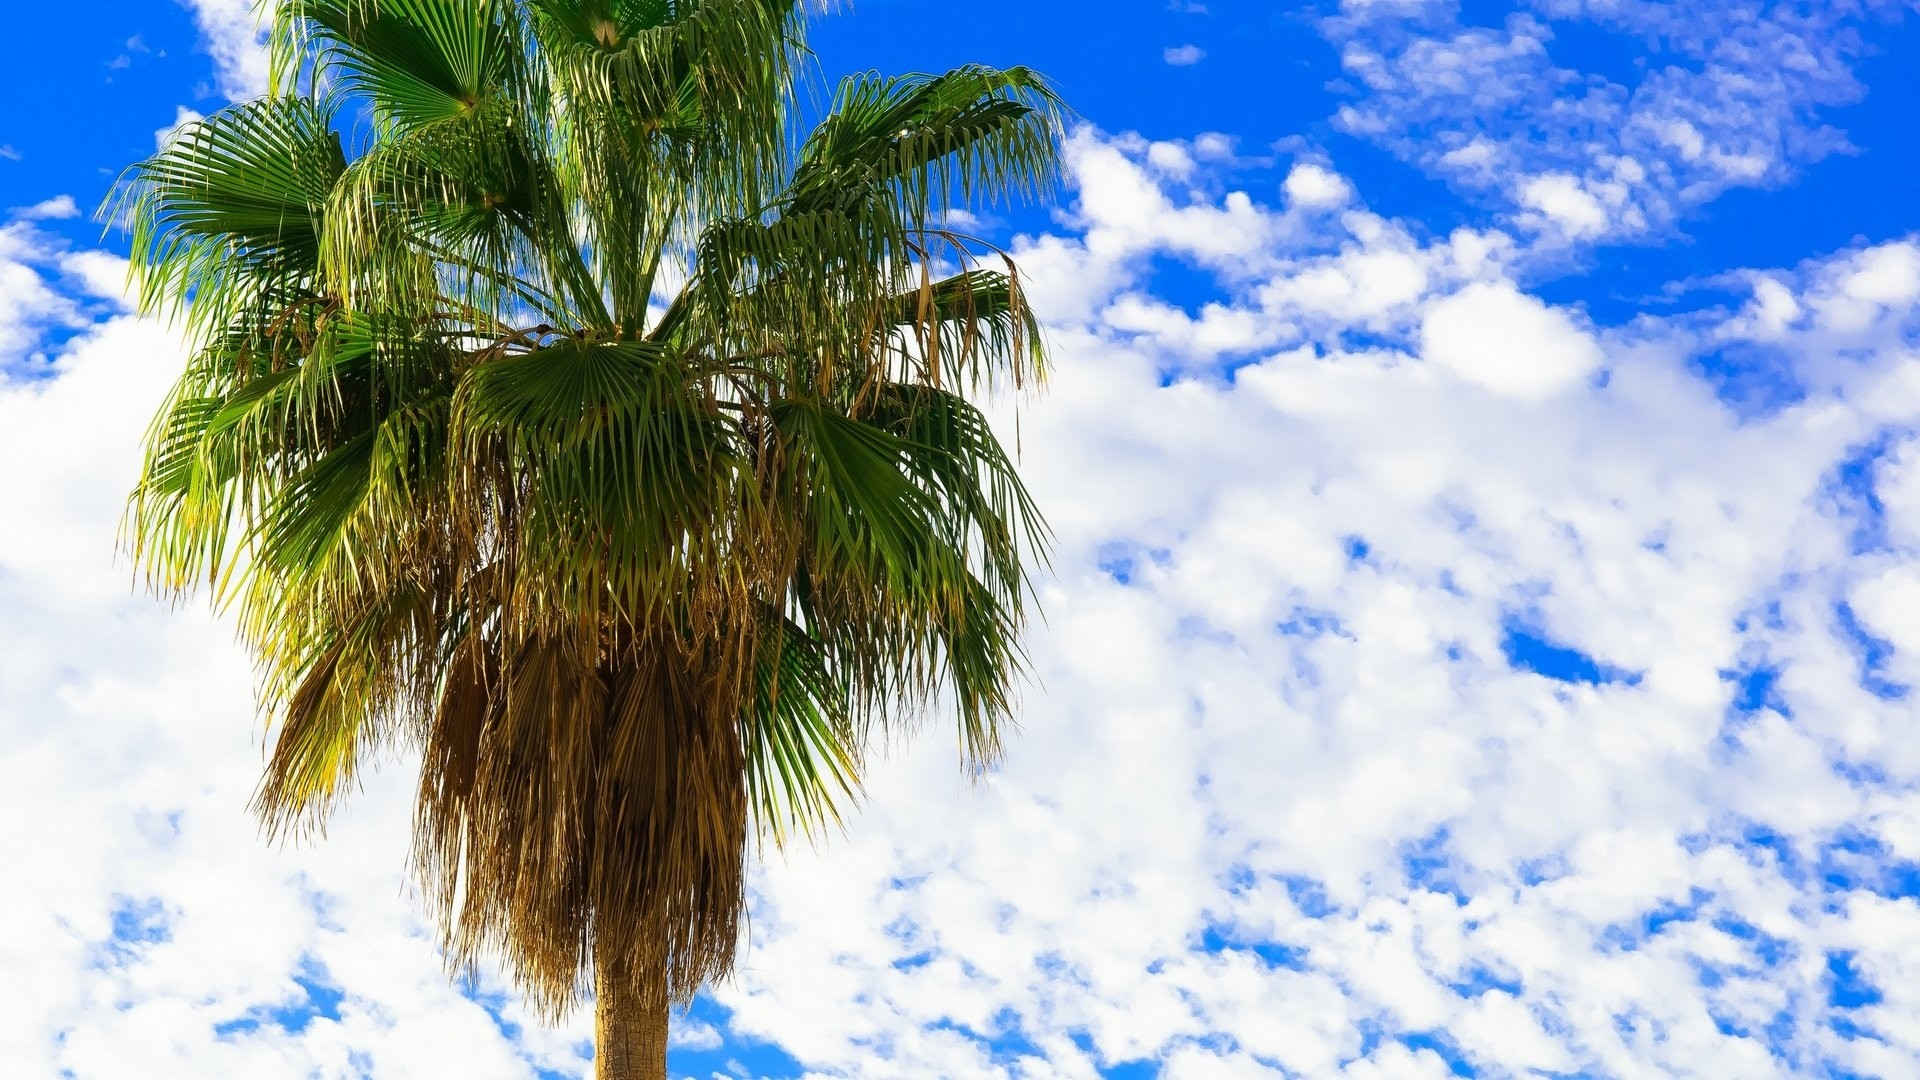 Palm Tree Wallpaper Picture hd